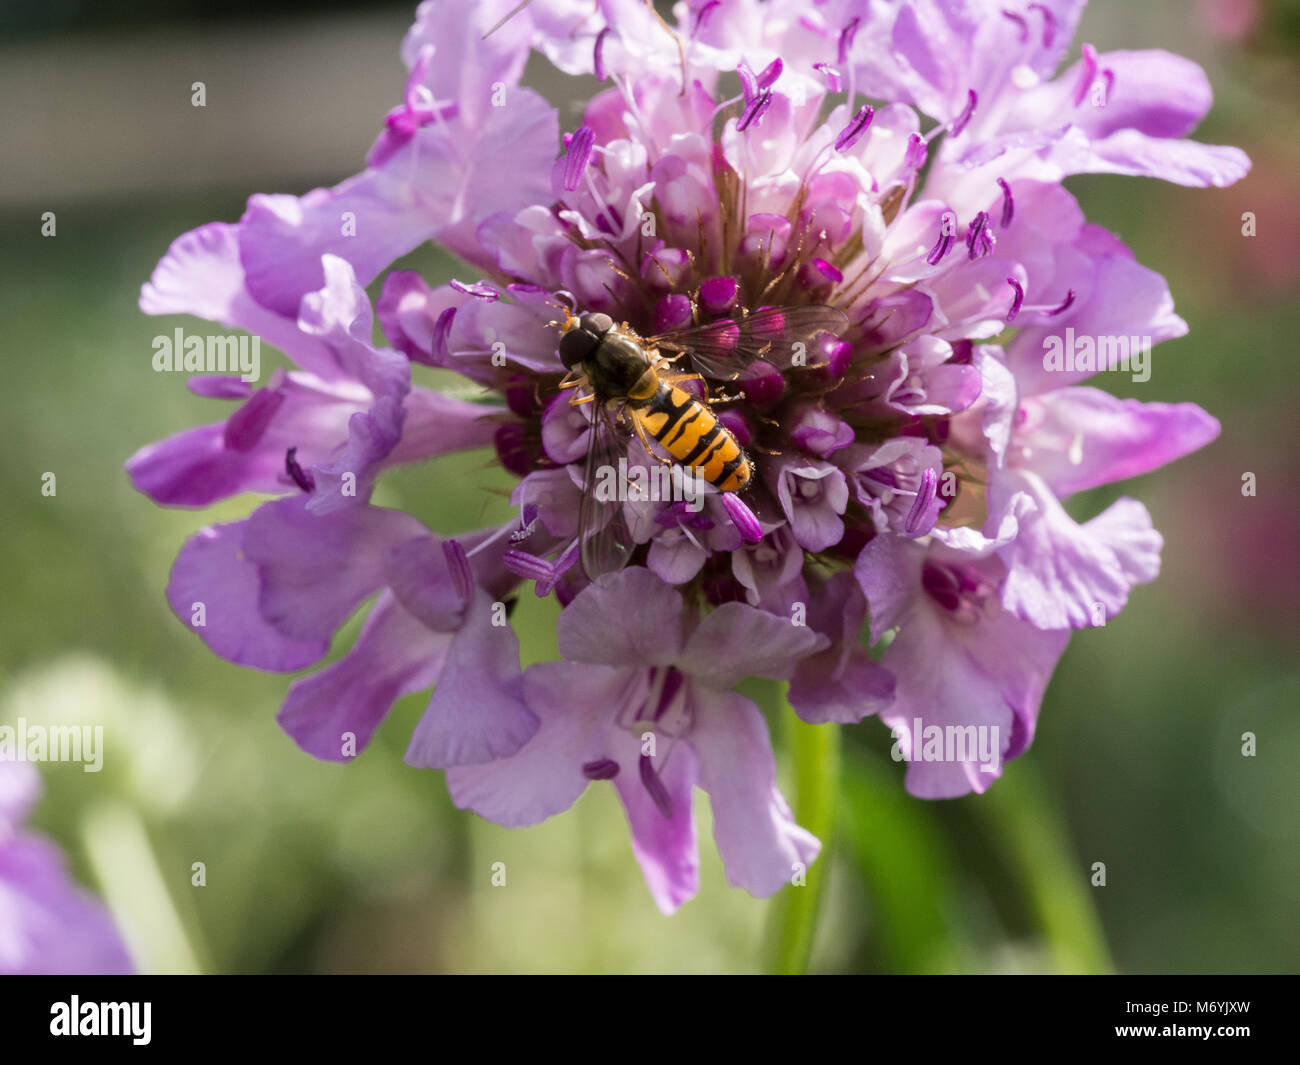 A marmalade hoverfly feeding on the powder blue flower of a scabious - Stock Image